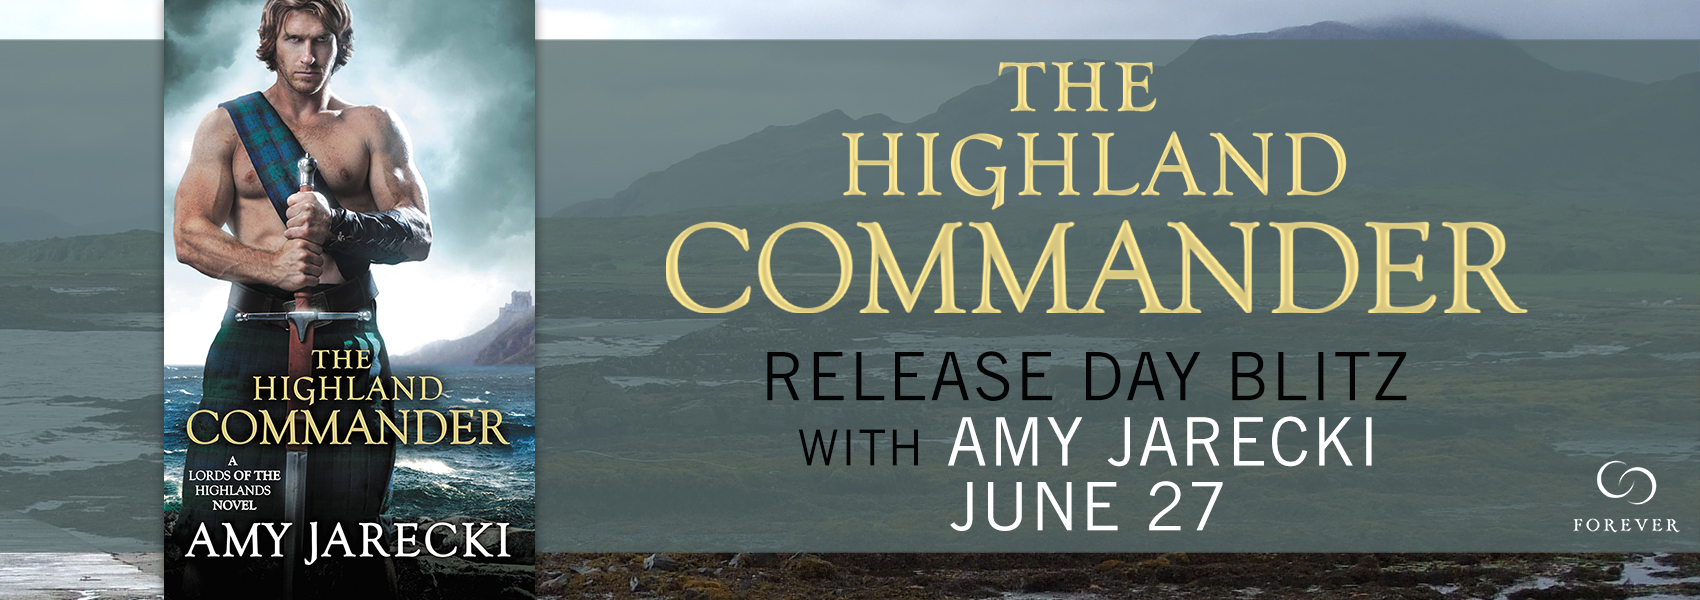 The Highland Commander Release Day